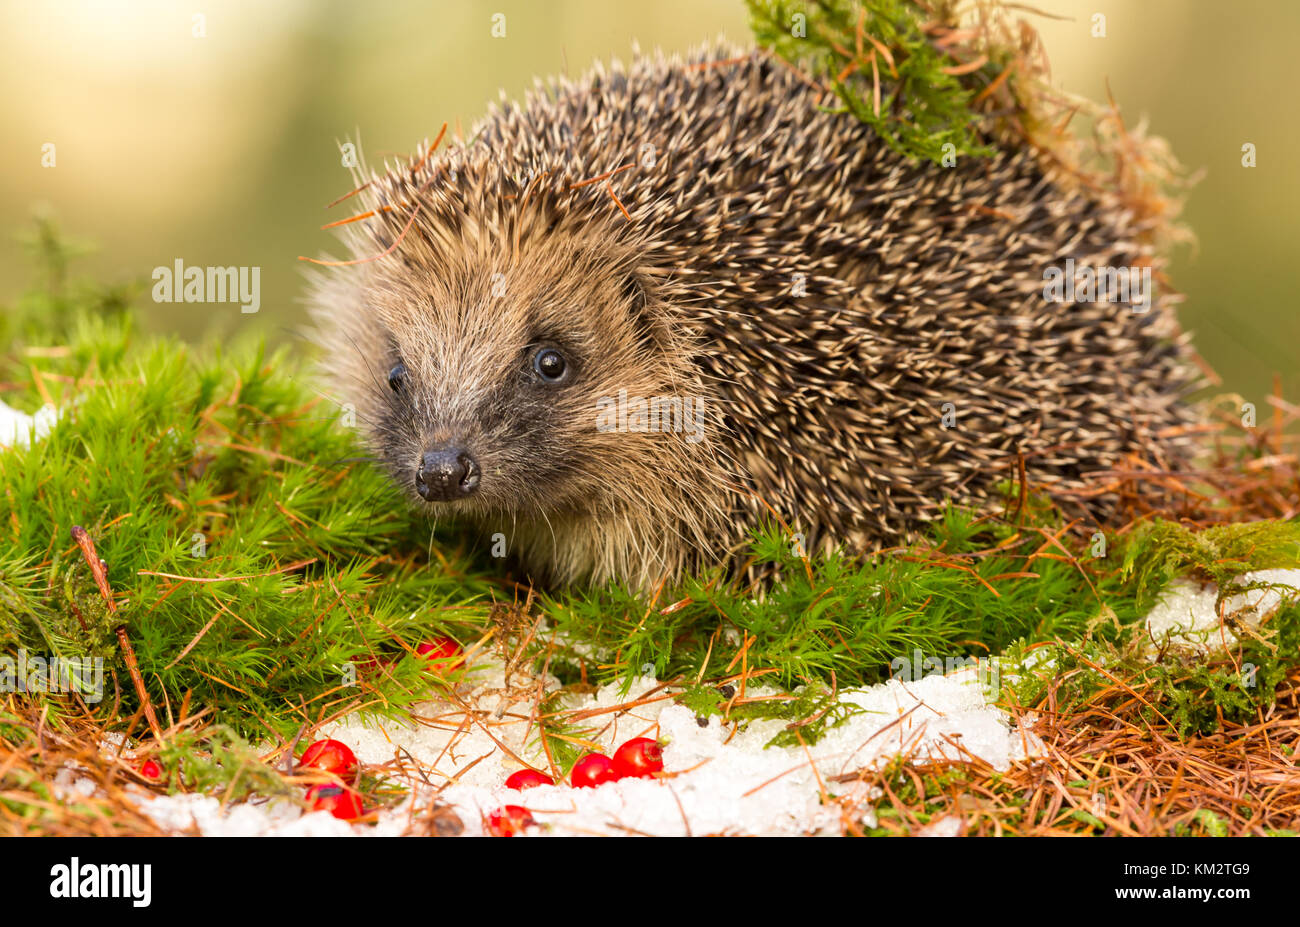 hedgehog winter stockfotos hedgehog winter bilder alamy. Black Bedroom Furniture Sets. Home Design Ideas